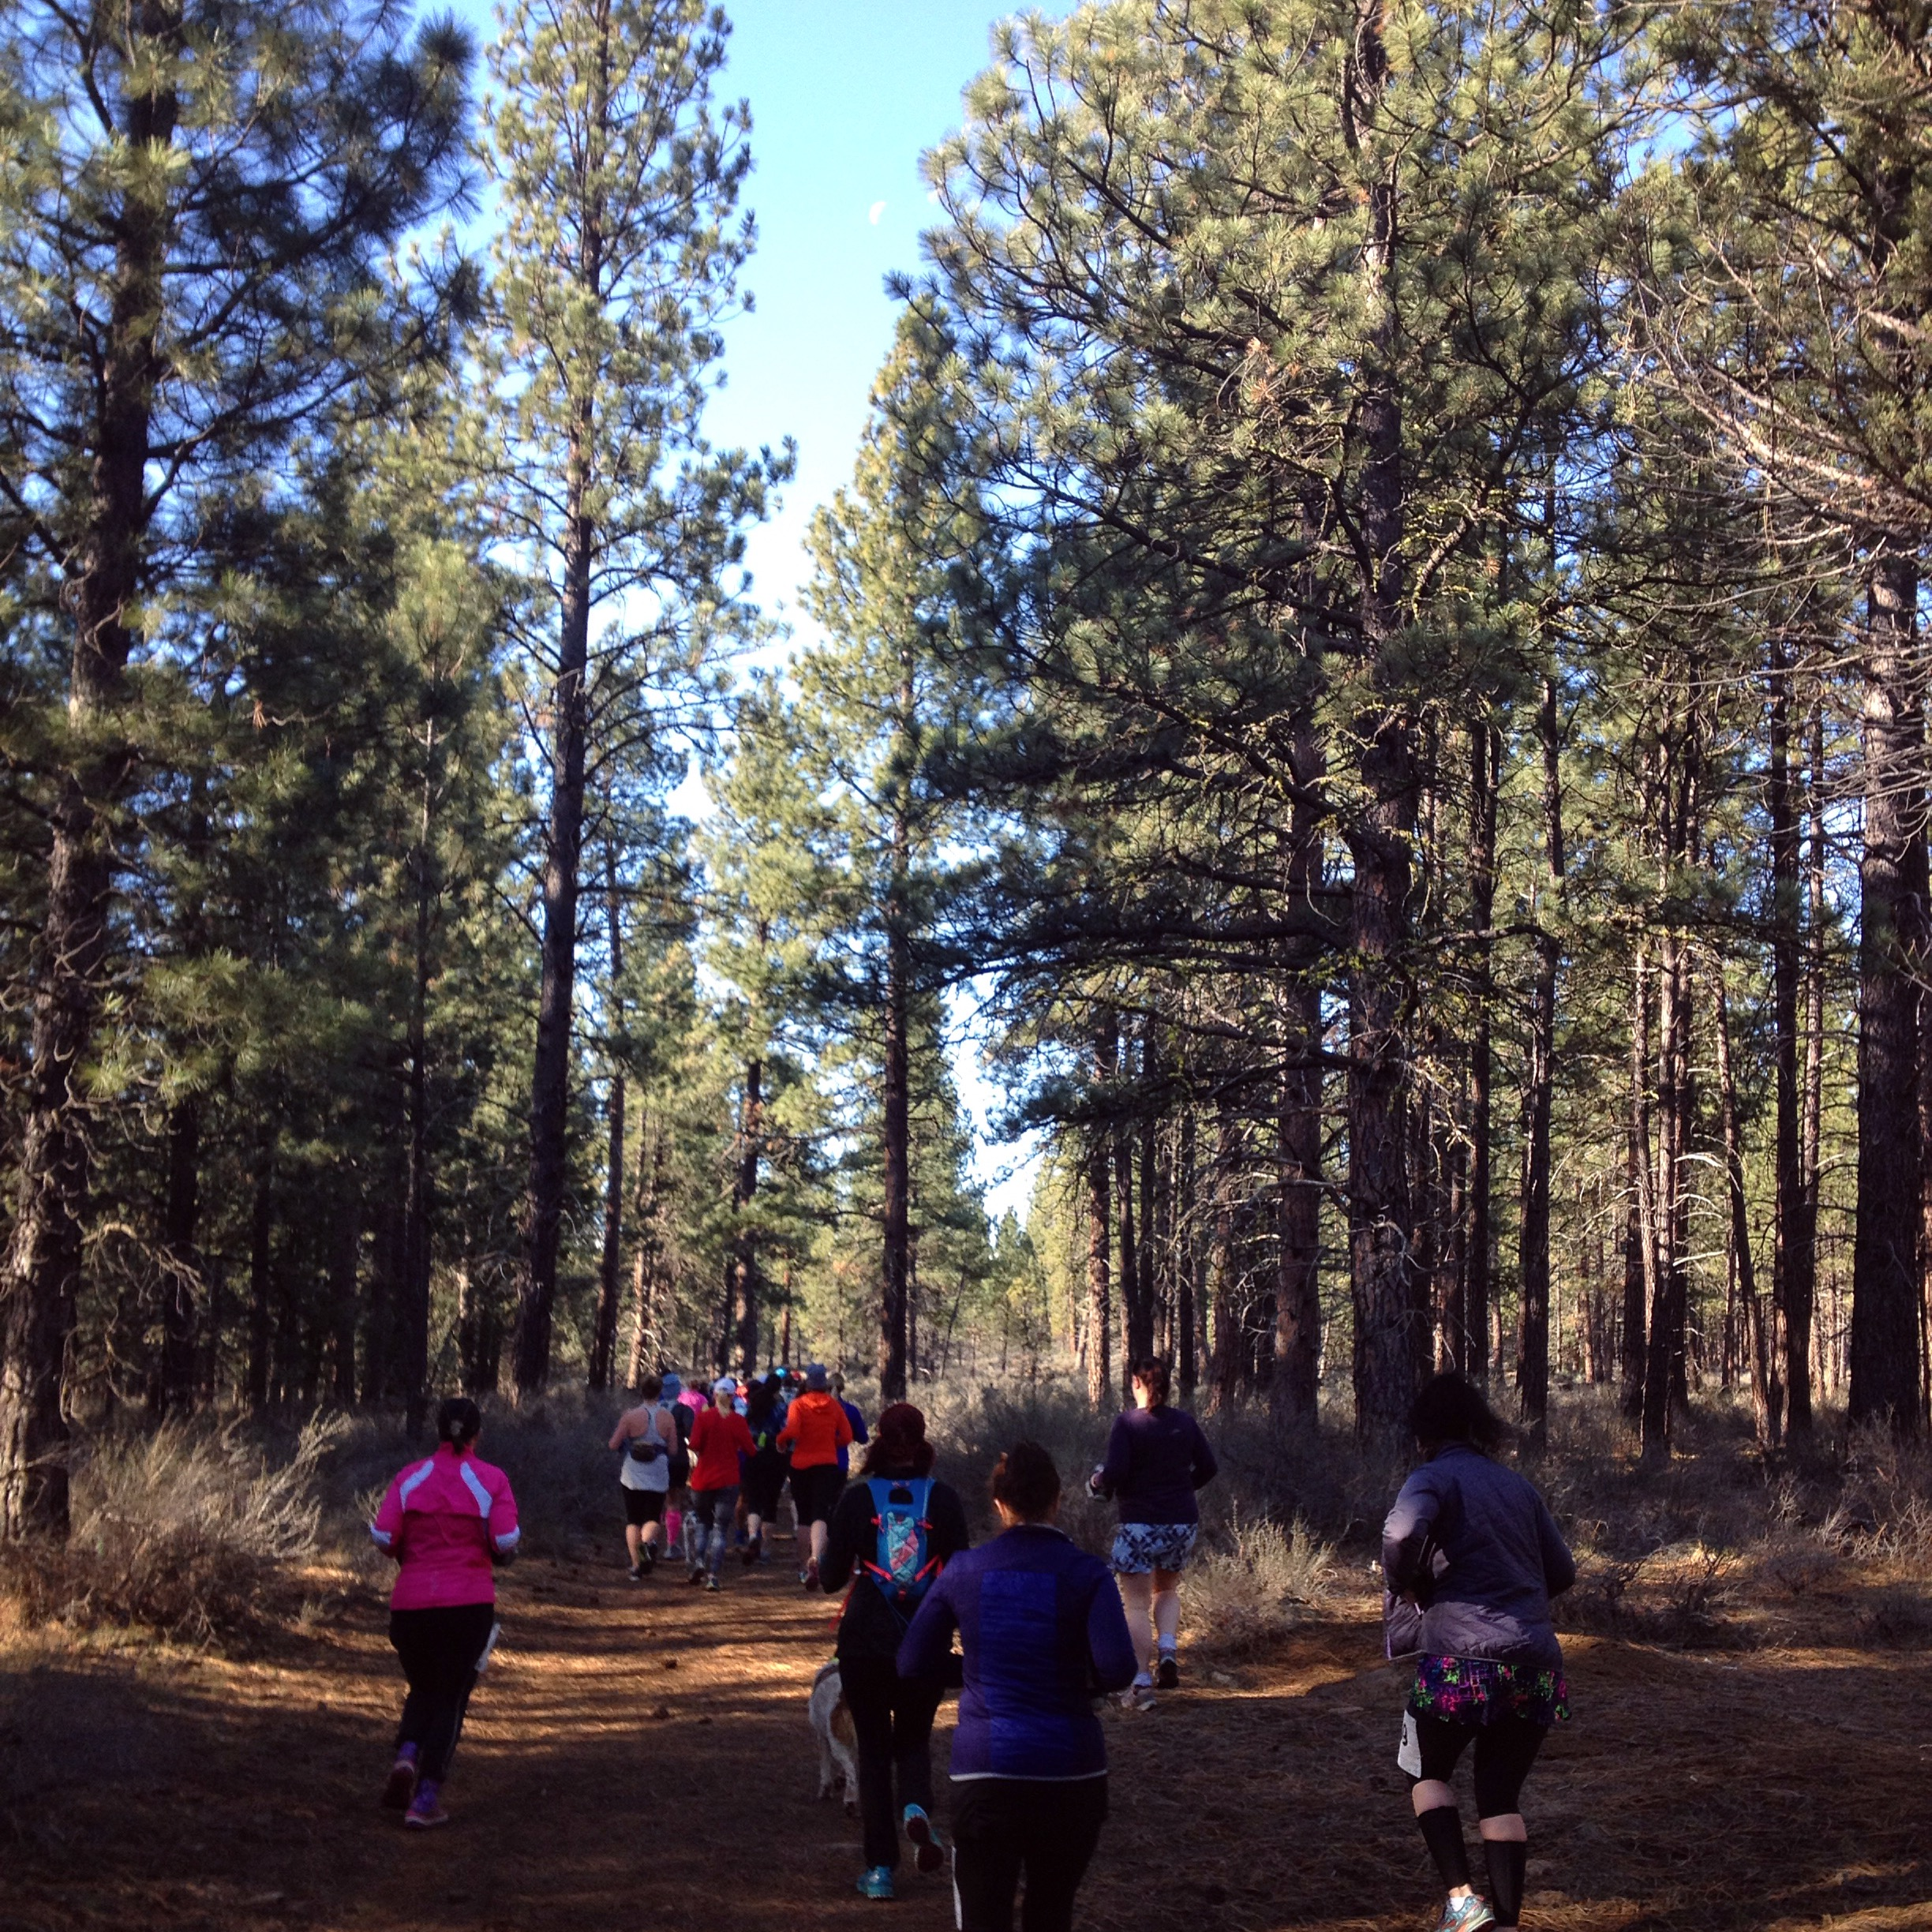 The beginning of the race started with a mob of runners on a rapidly narrowing trail.